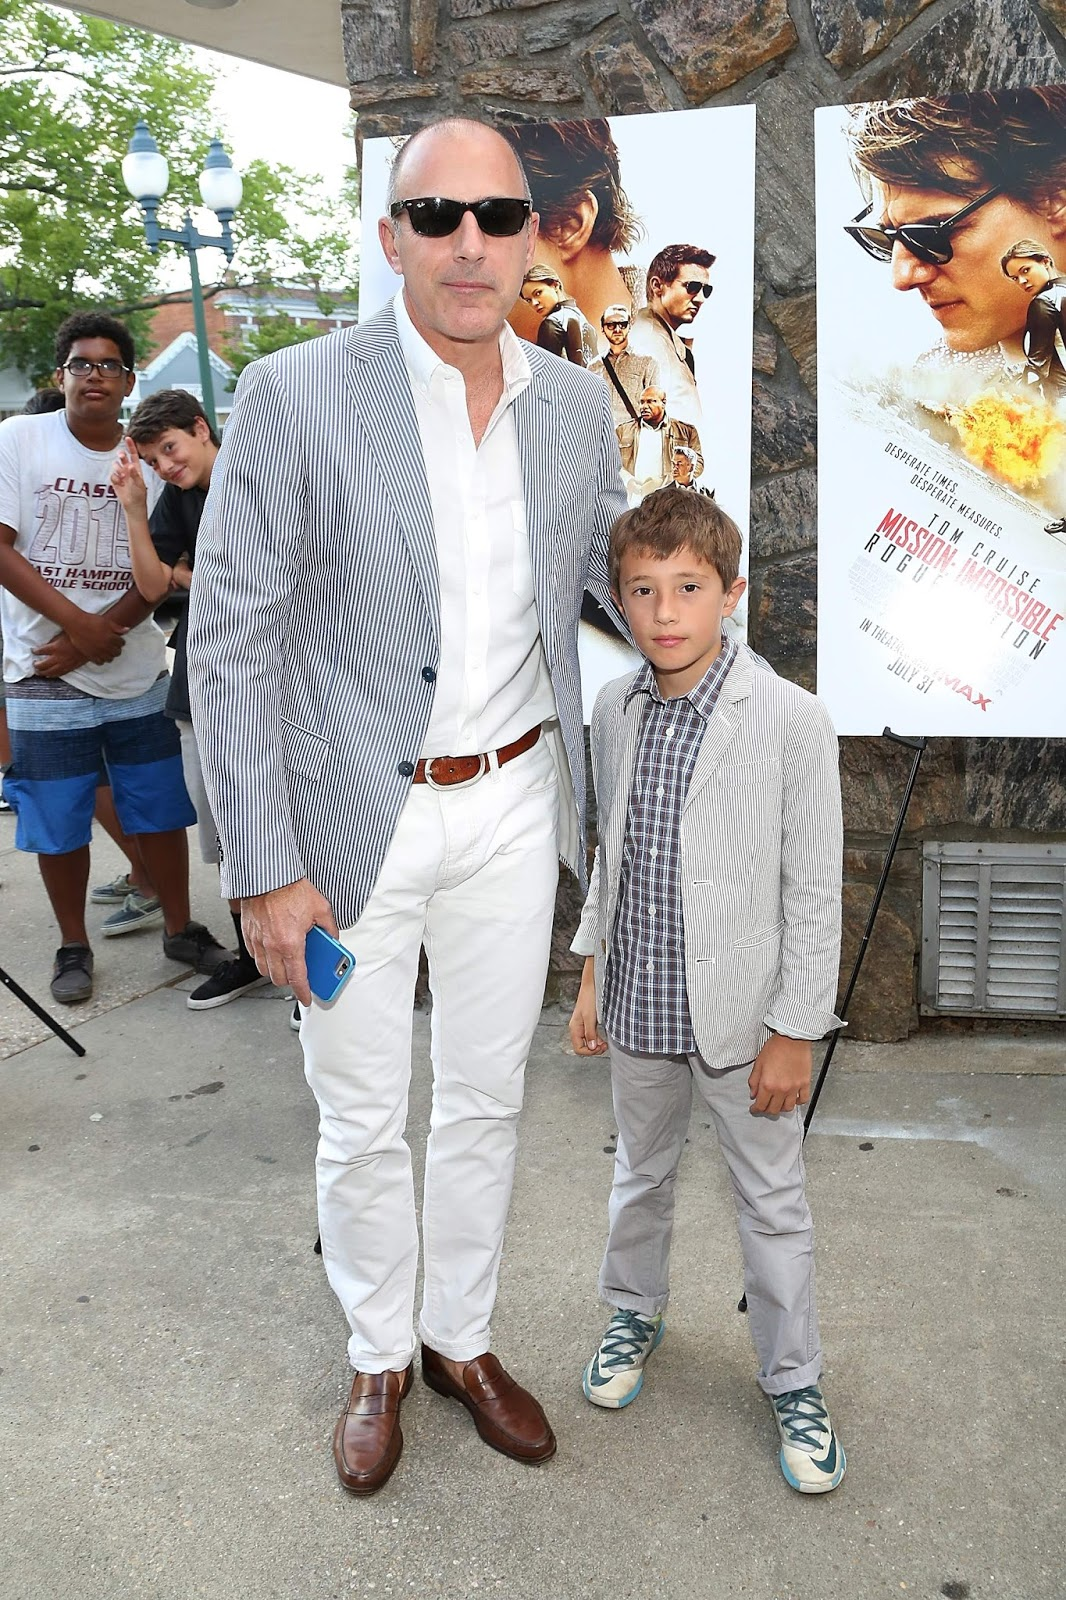 How Many Kids Does <b>Matt</b> <b>Lauer</b> Have? - Ages